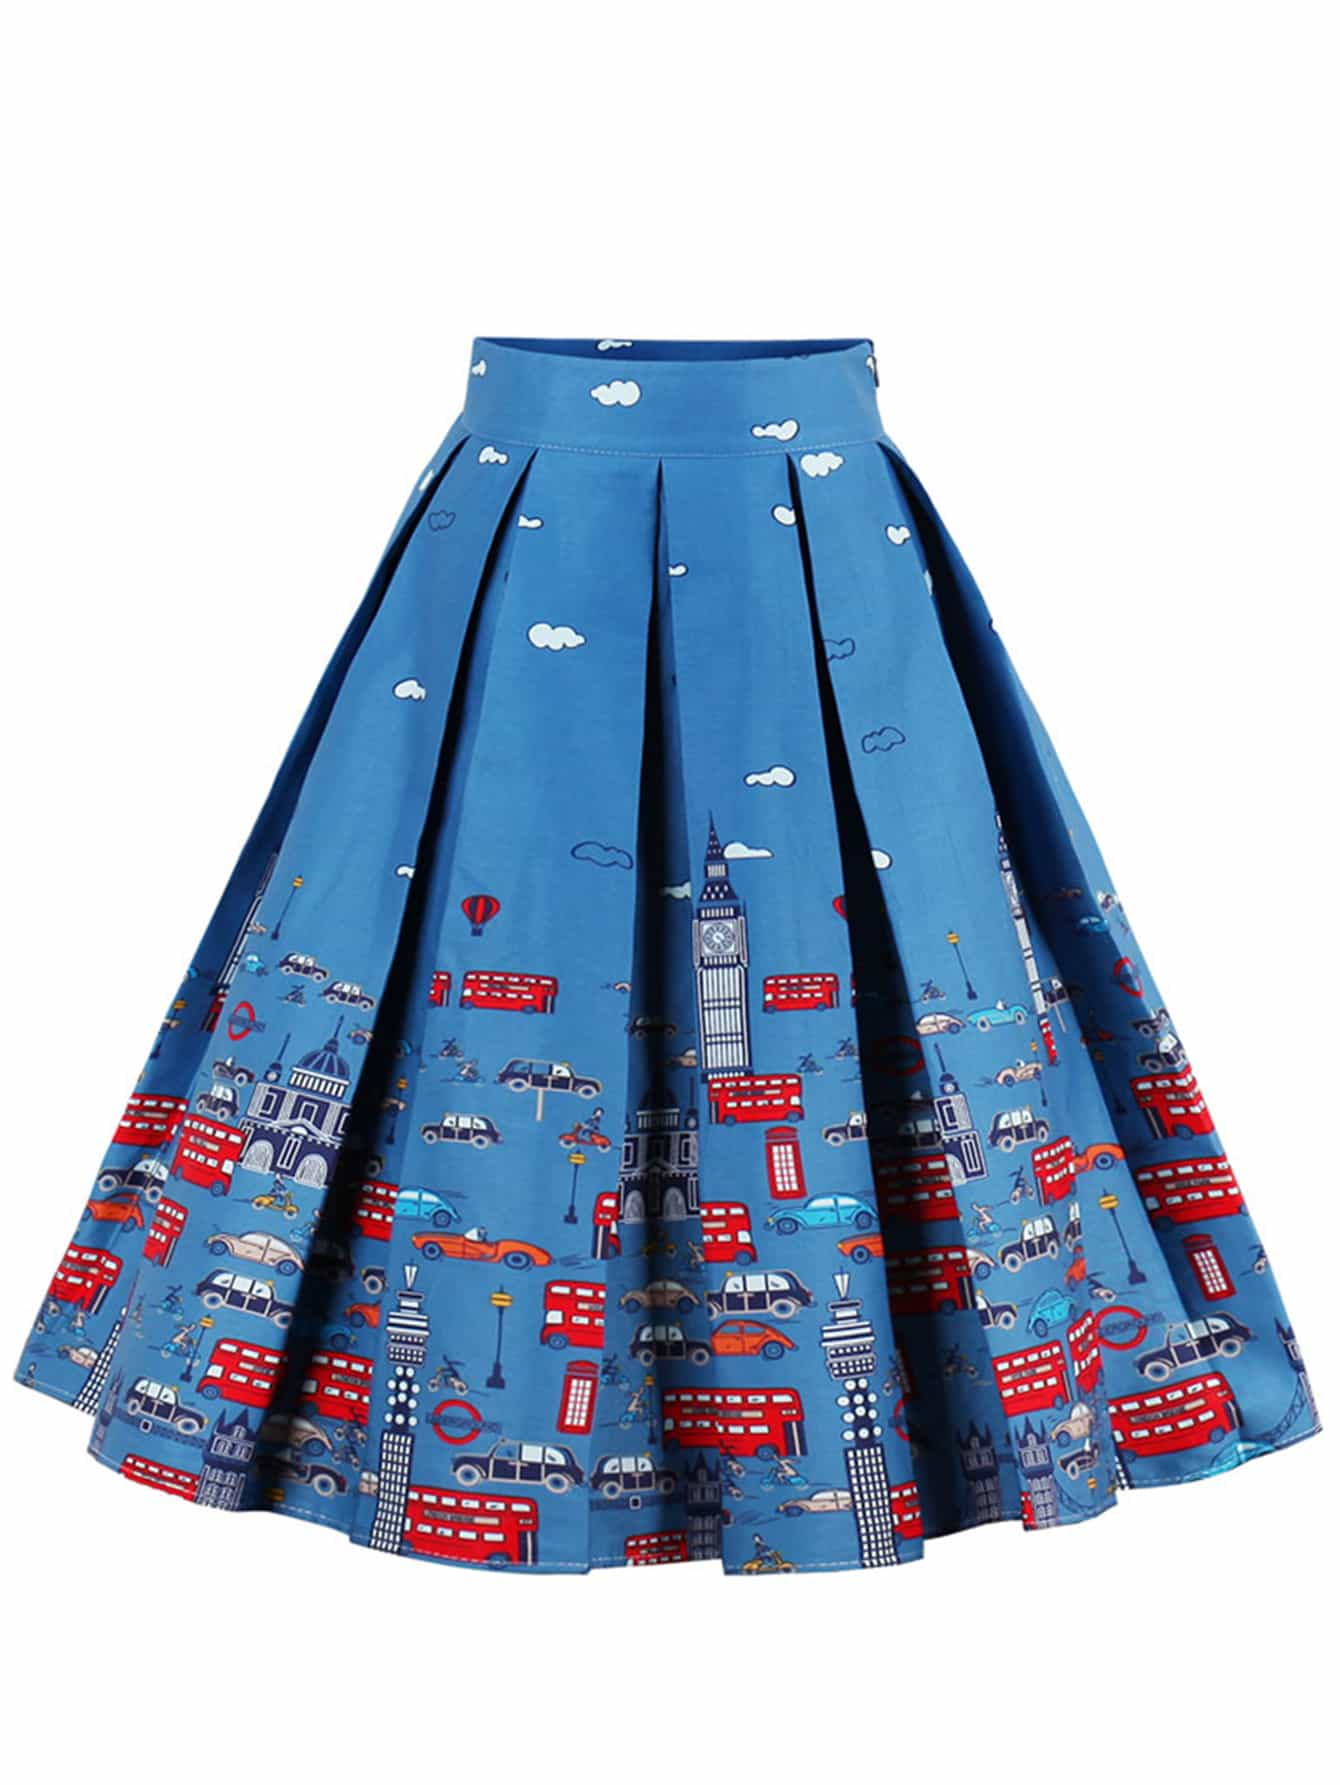 Cartoon Print Box Pleated Skirt -SheIn(Sheinside)